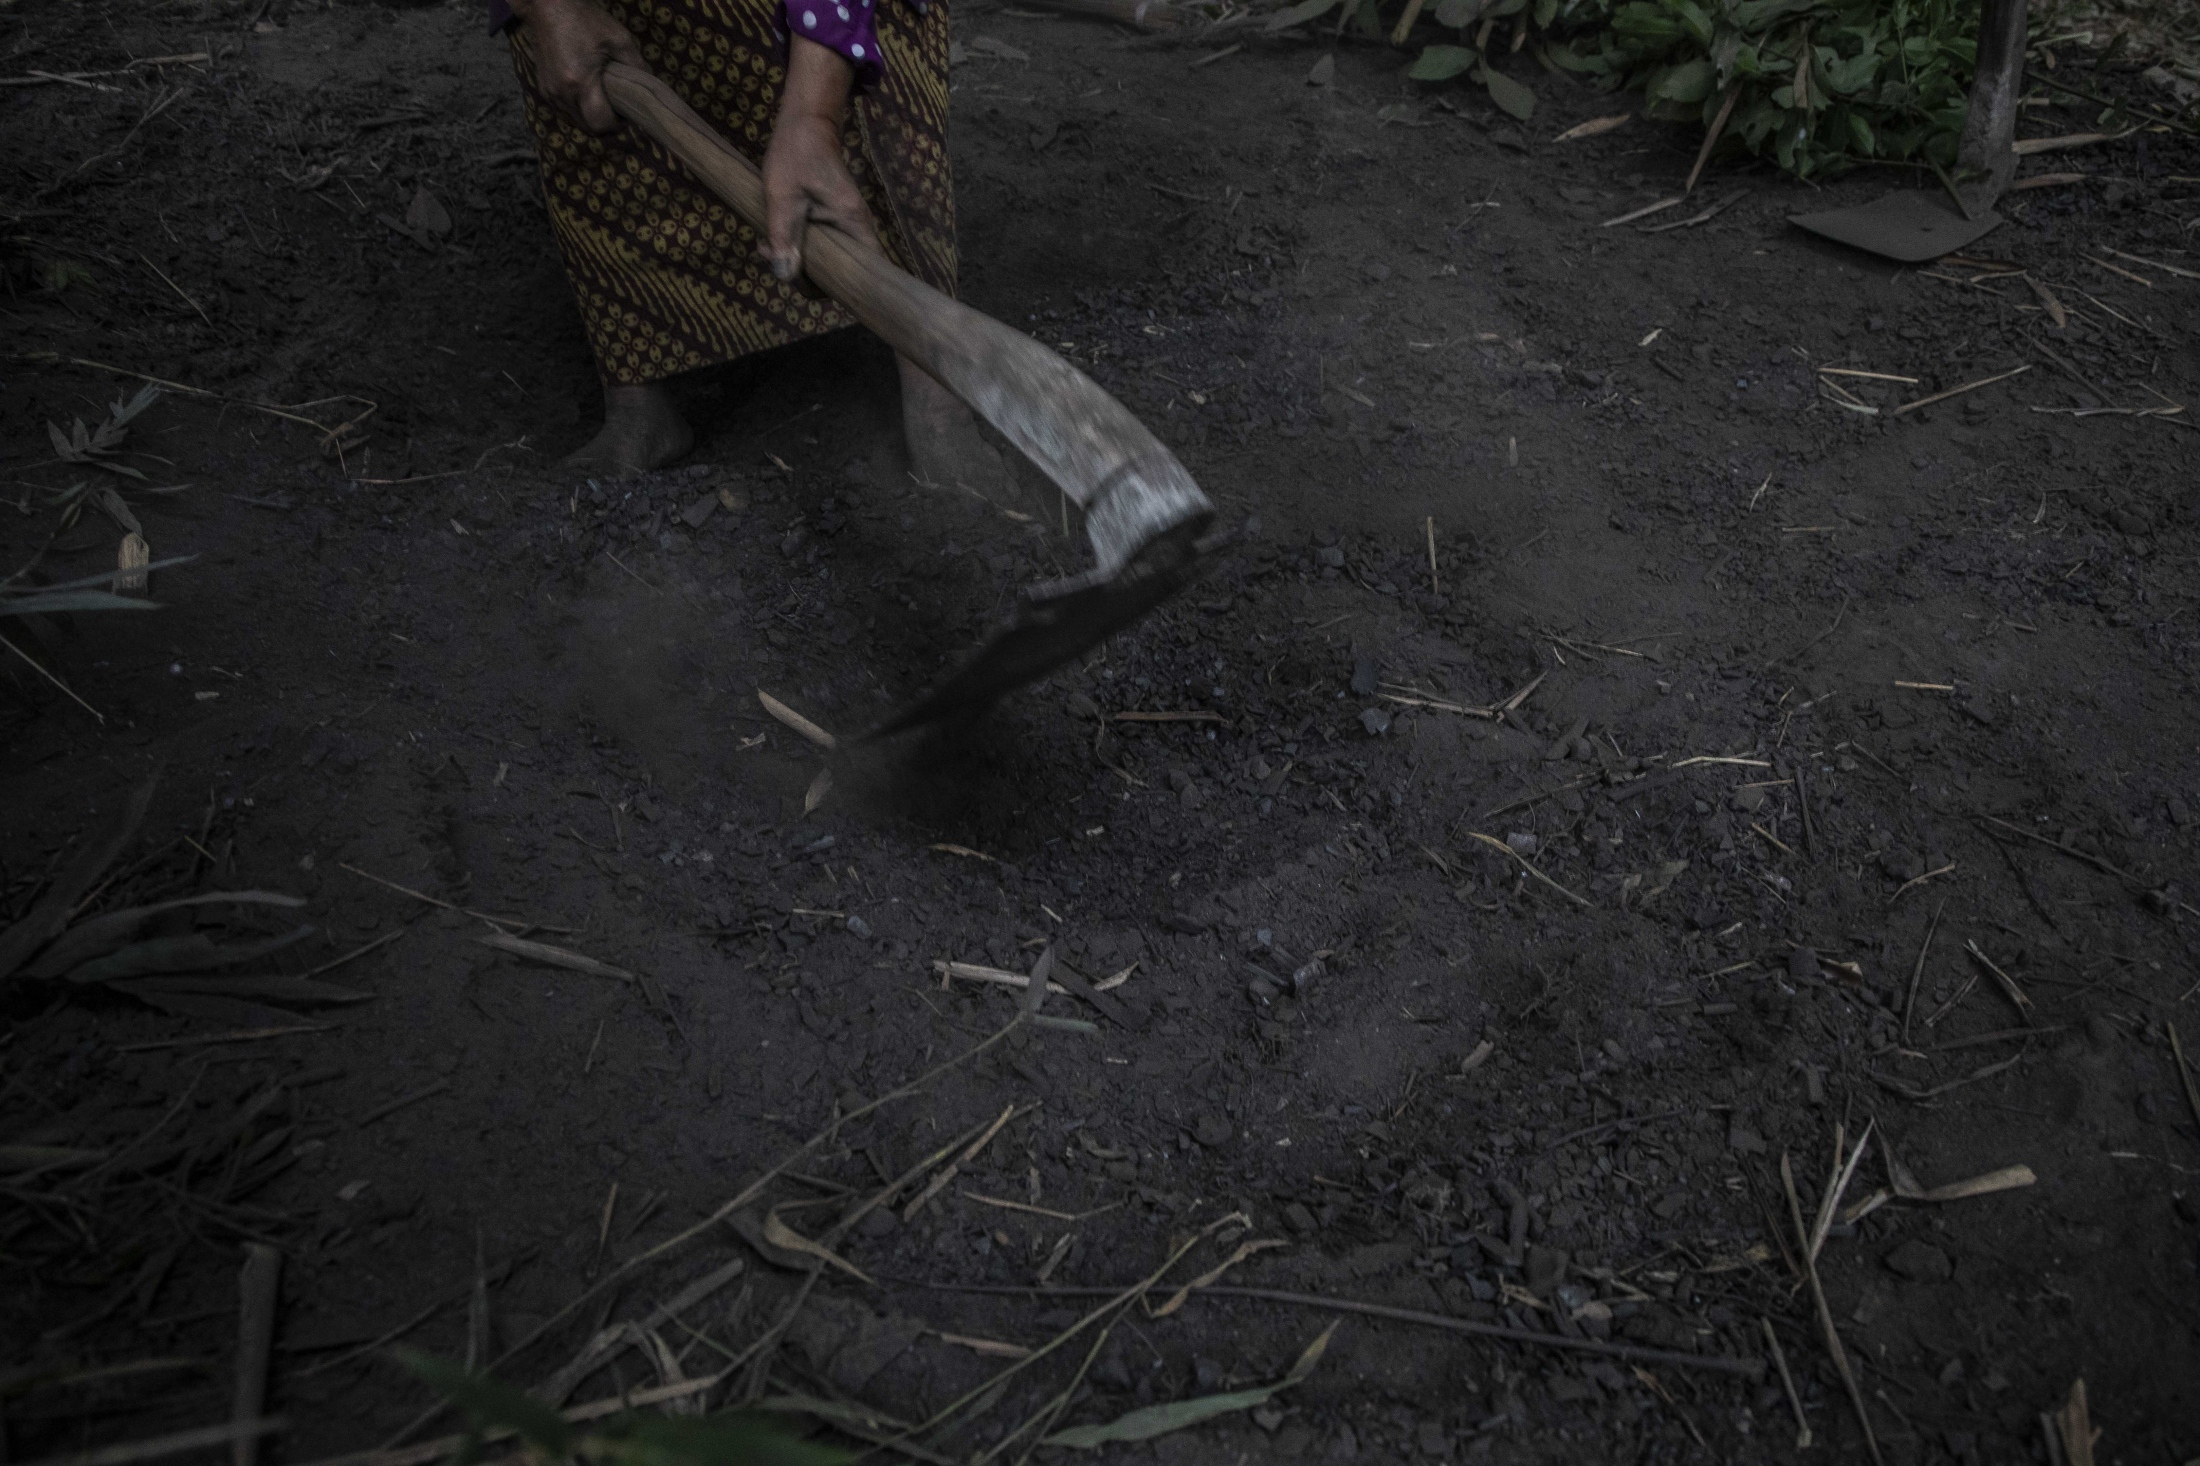 Mbah Sudiwiyono digging a whole into the ground to prepare the the fire to make charcoal. Despite her persistent and hard work she remains very poor receiving about 15000 to 20000 Indonesian rupiah (1 to 1.30 US Dollar) for one kilo of wood coal and sells in big packs of about 30 kilograms at irregular times. She can only produce charcoal in the dry season from May to September.